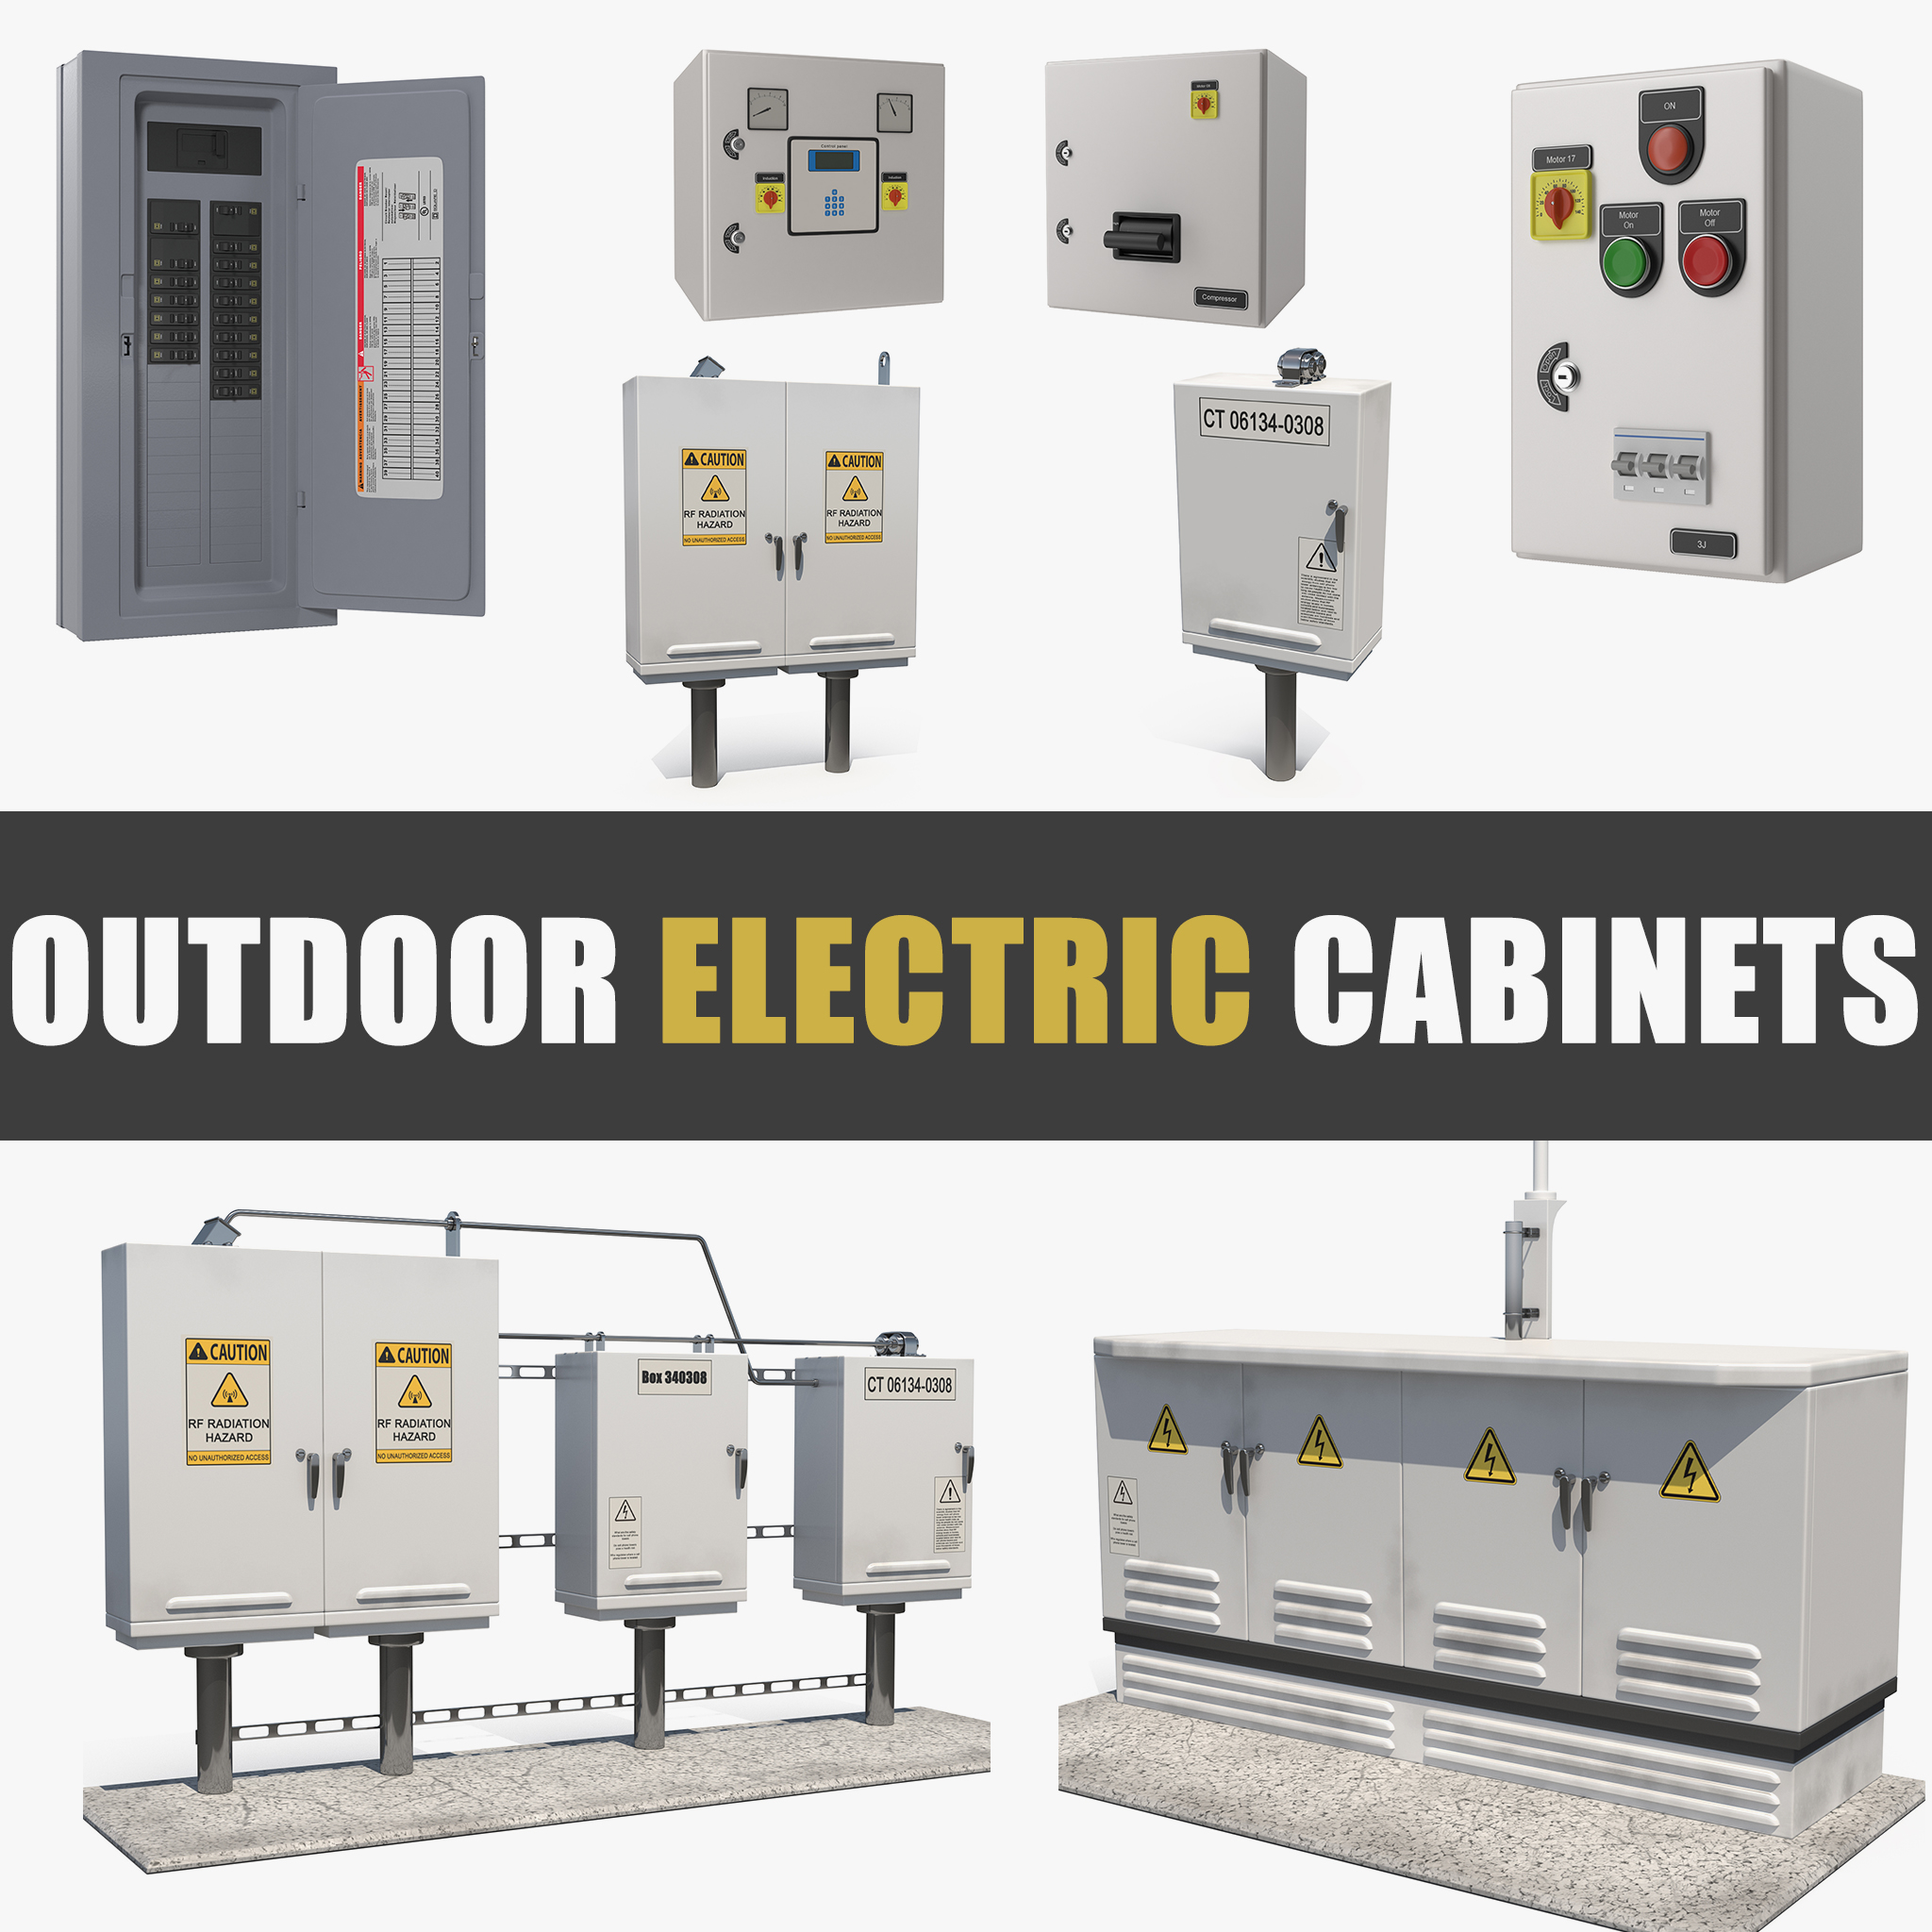 Outdoor Electric Cabinets Collection on